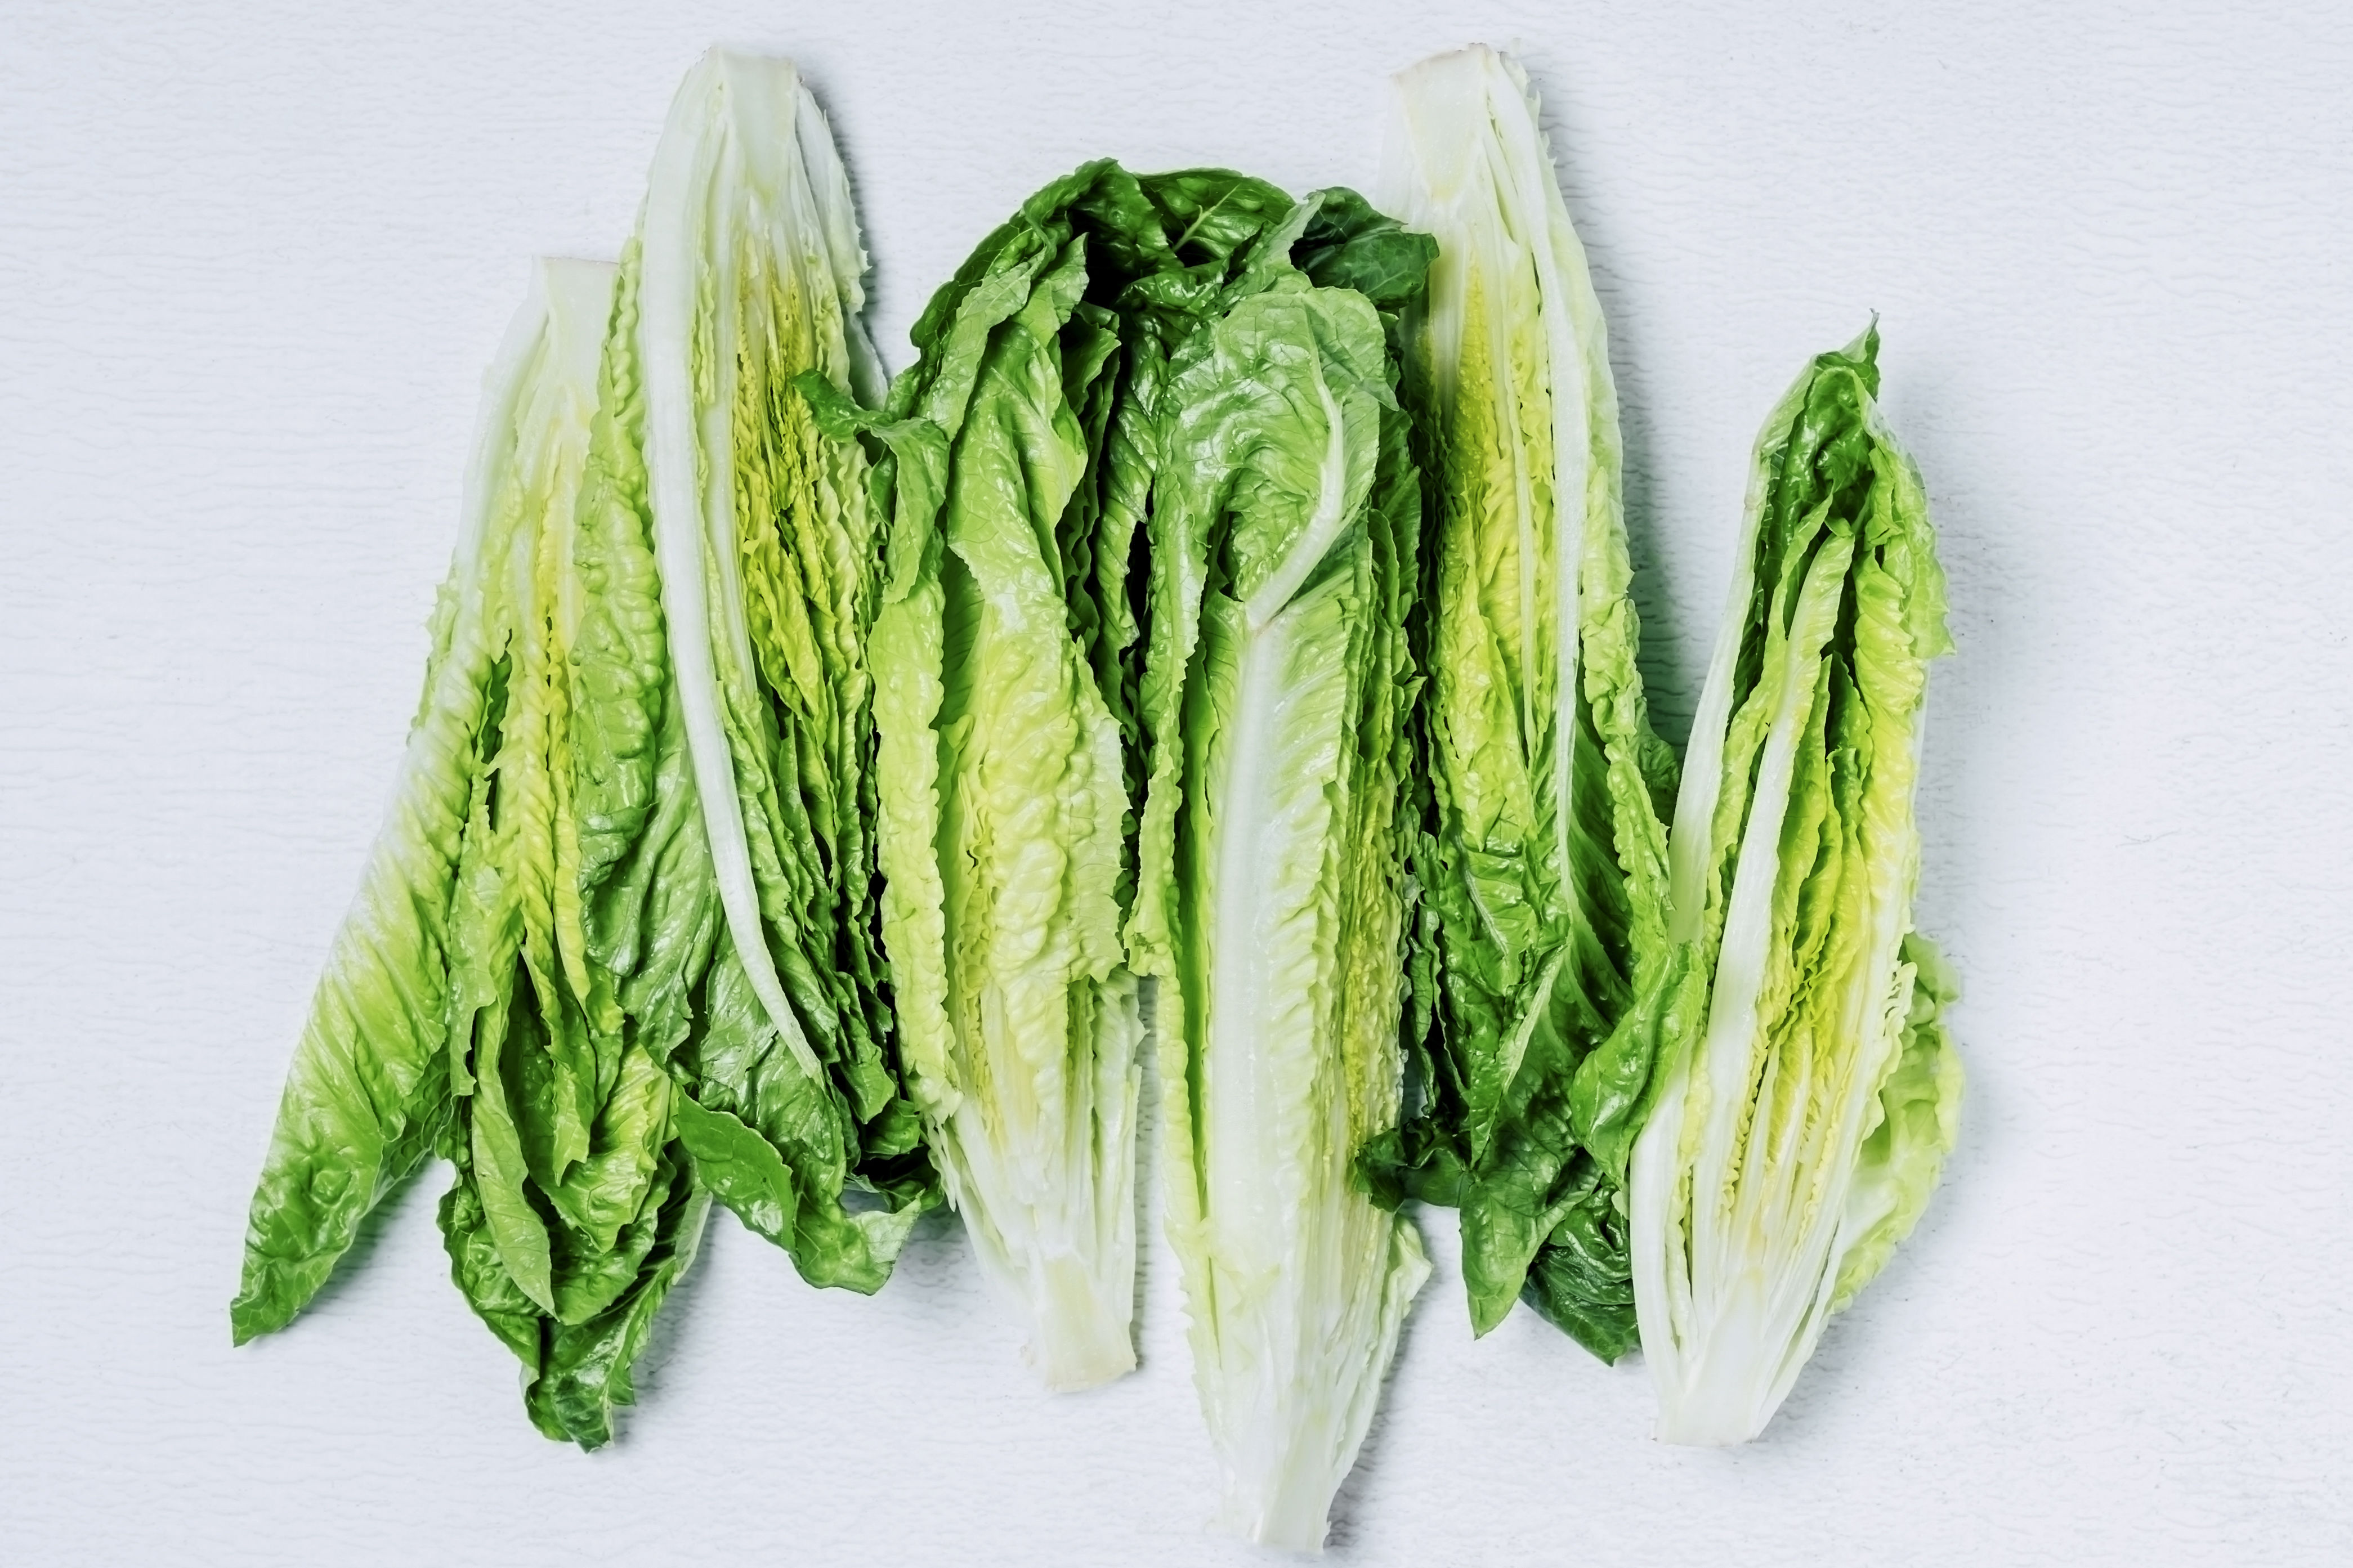 Romaine Lettuce Is the Likely Source of a Dangerous E. Coli Outbreak